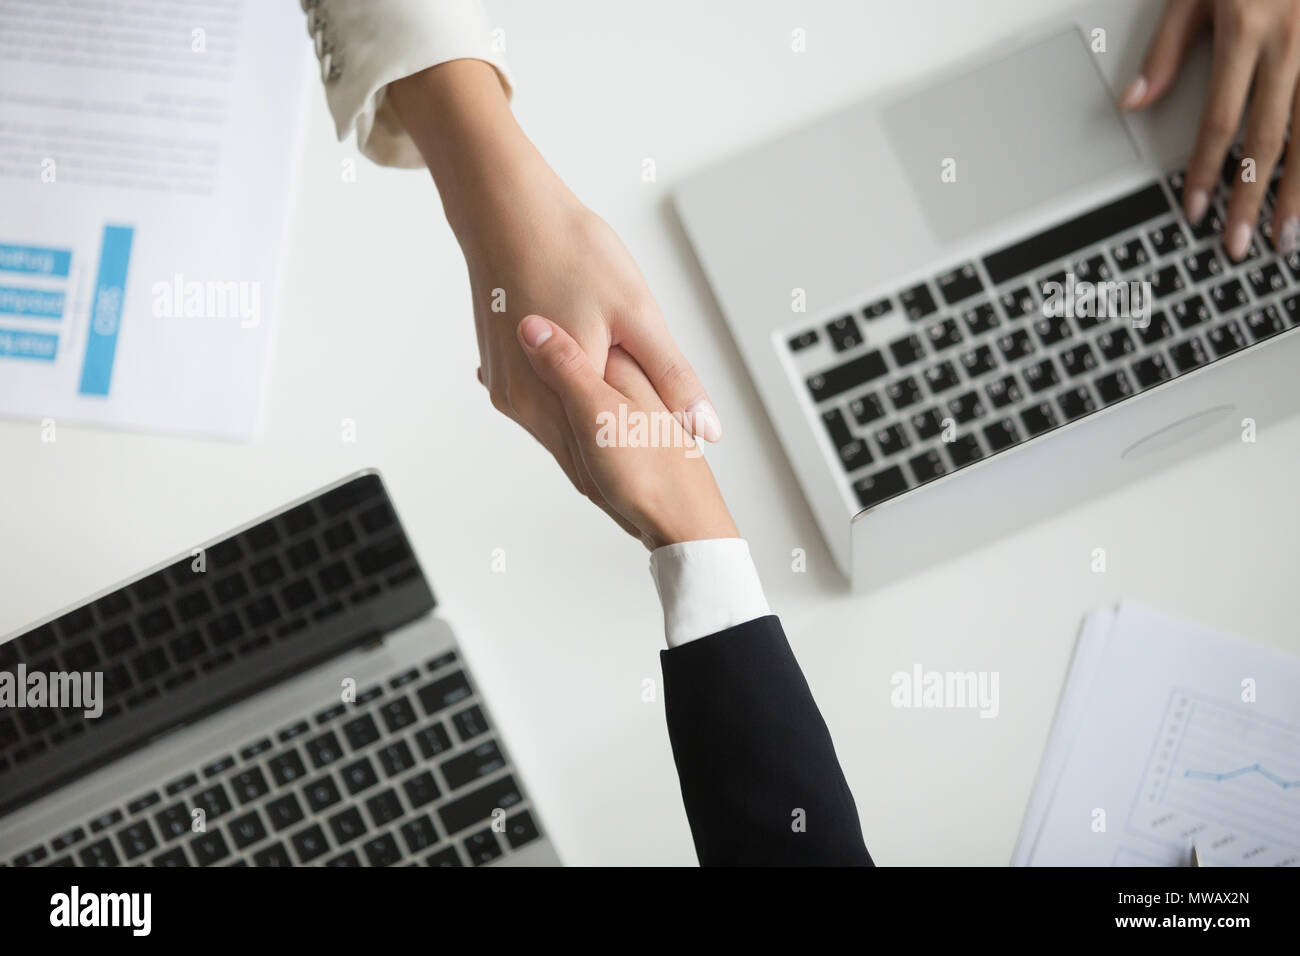 Female hands shaking at meeting making deal, top closeup view - Stock Image